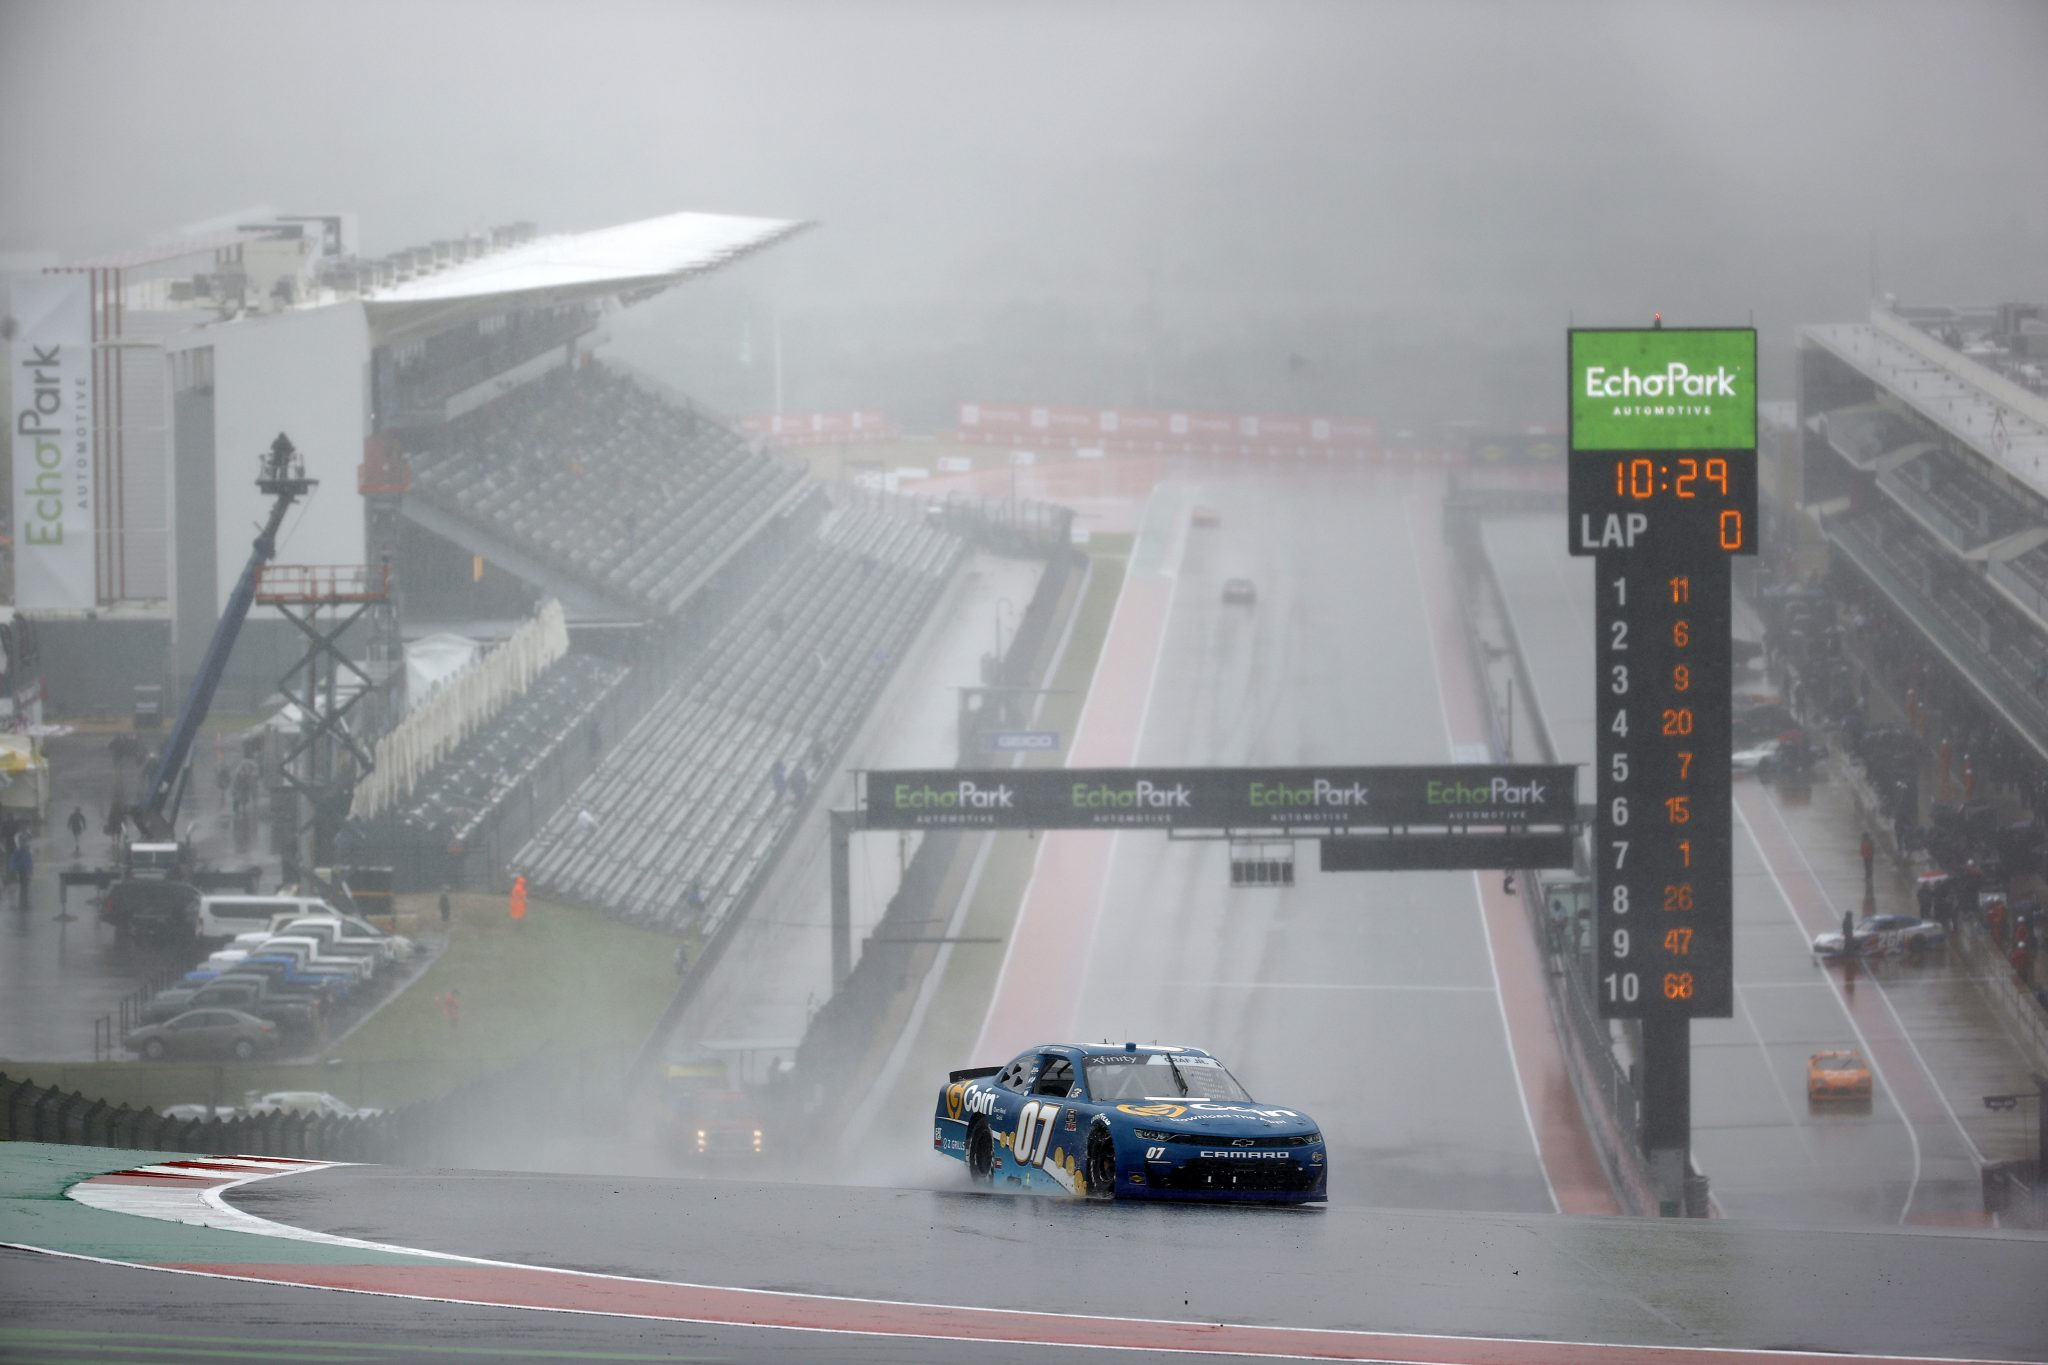 AUSTIN, TEXAS - MAY 22: Joe Graf Jr, driver of the #07 G Coin Chevrolet, drives during qualifying for the NASCAR Xfinity Series Pit Boss 250 at Circuit of The Americas on May 22, 2021 in Austin, Texas. (Photo by Jared C. Tilton/Getty Images) | Getty Images